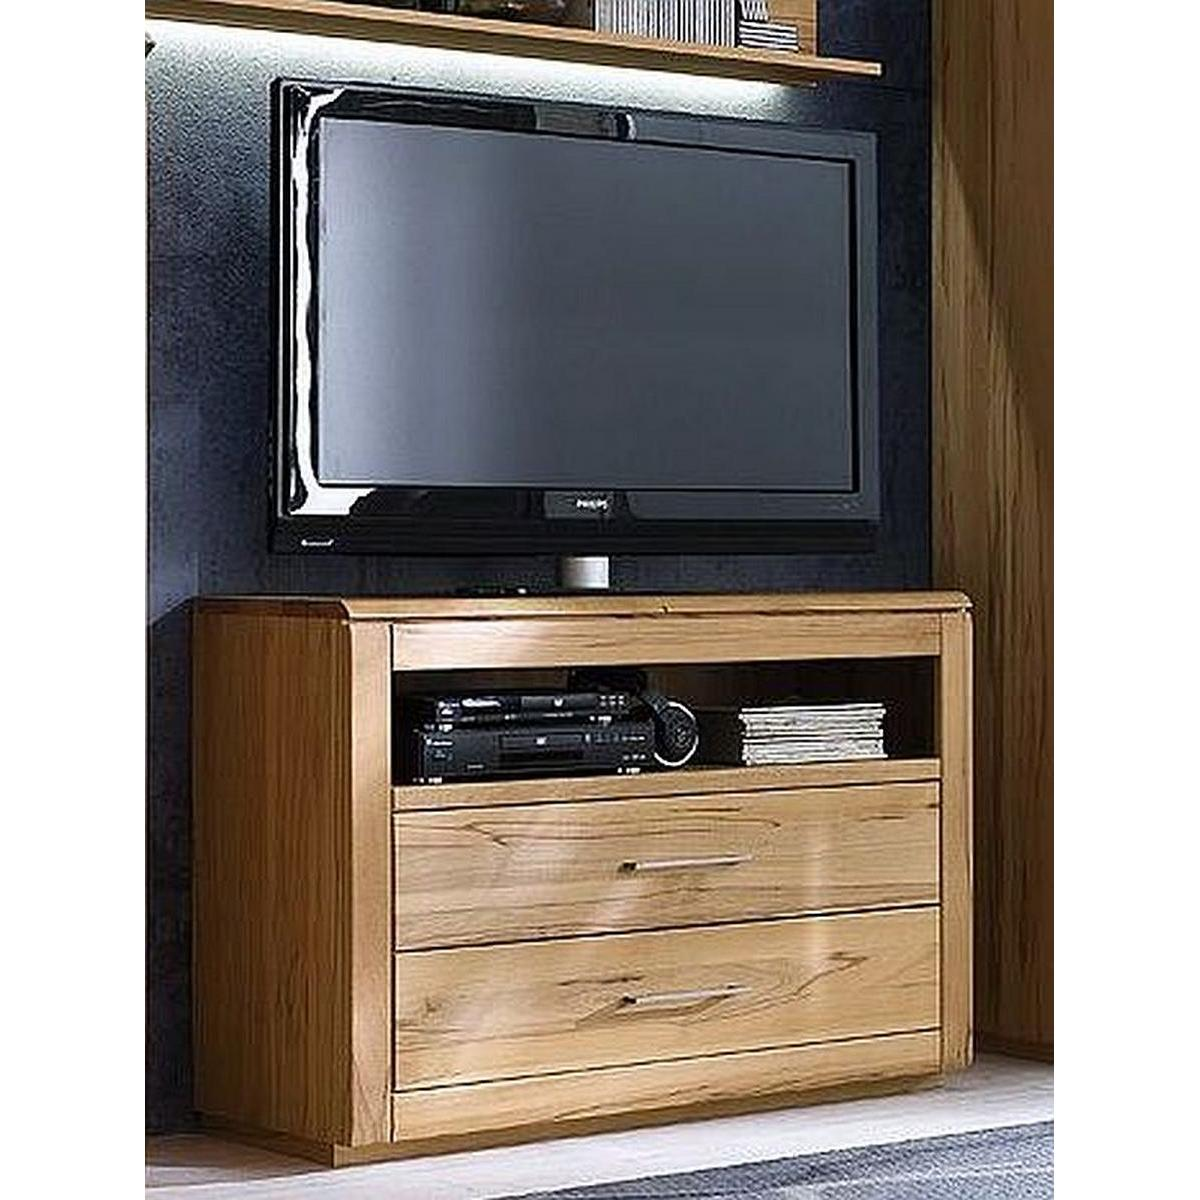 Hifi Schrank Buche Massiv Tv Schrank Buche Massiv Monika Pictures To Pin On Pinterest